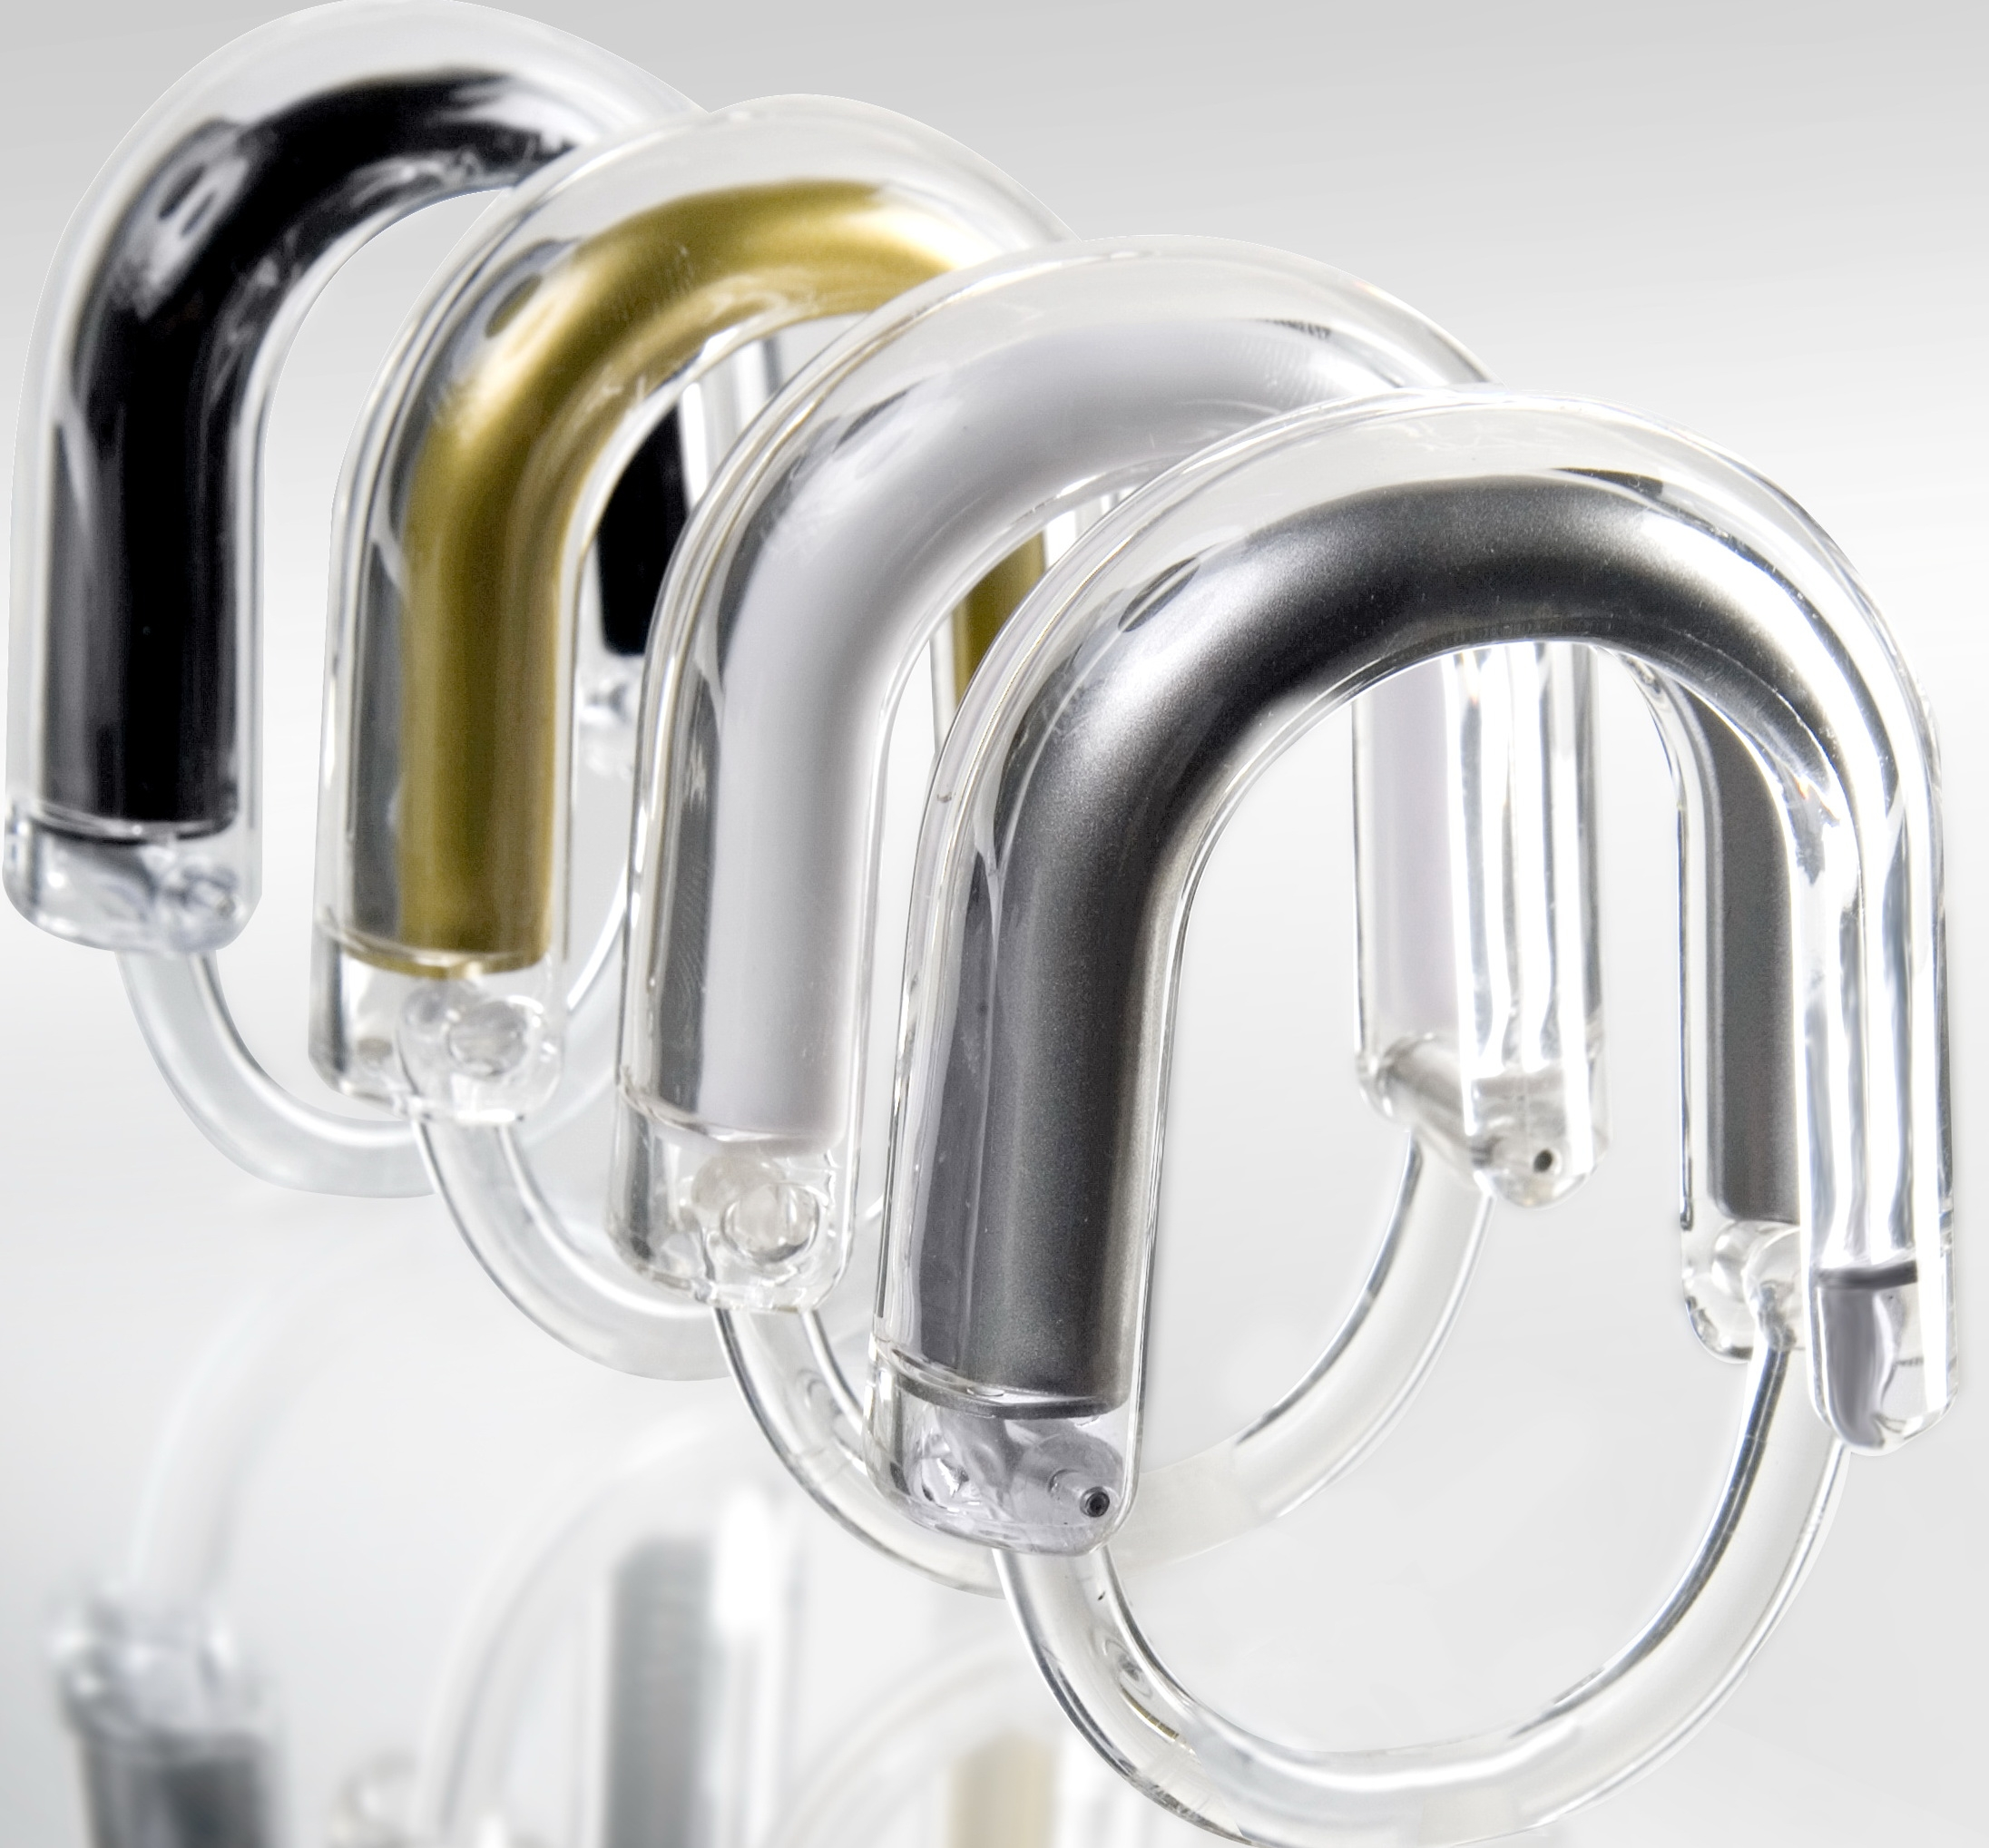 extra large shower curtain hooks. Extra Large Shower Curtain Rings Avarii Org Home Design Best Ideas extra large shower curtain rings  org